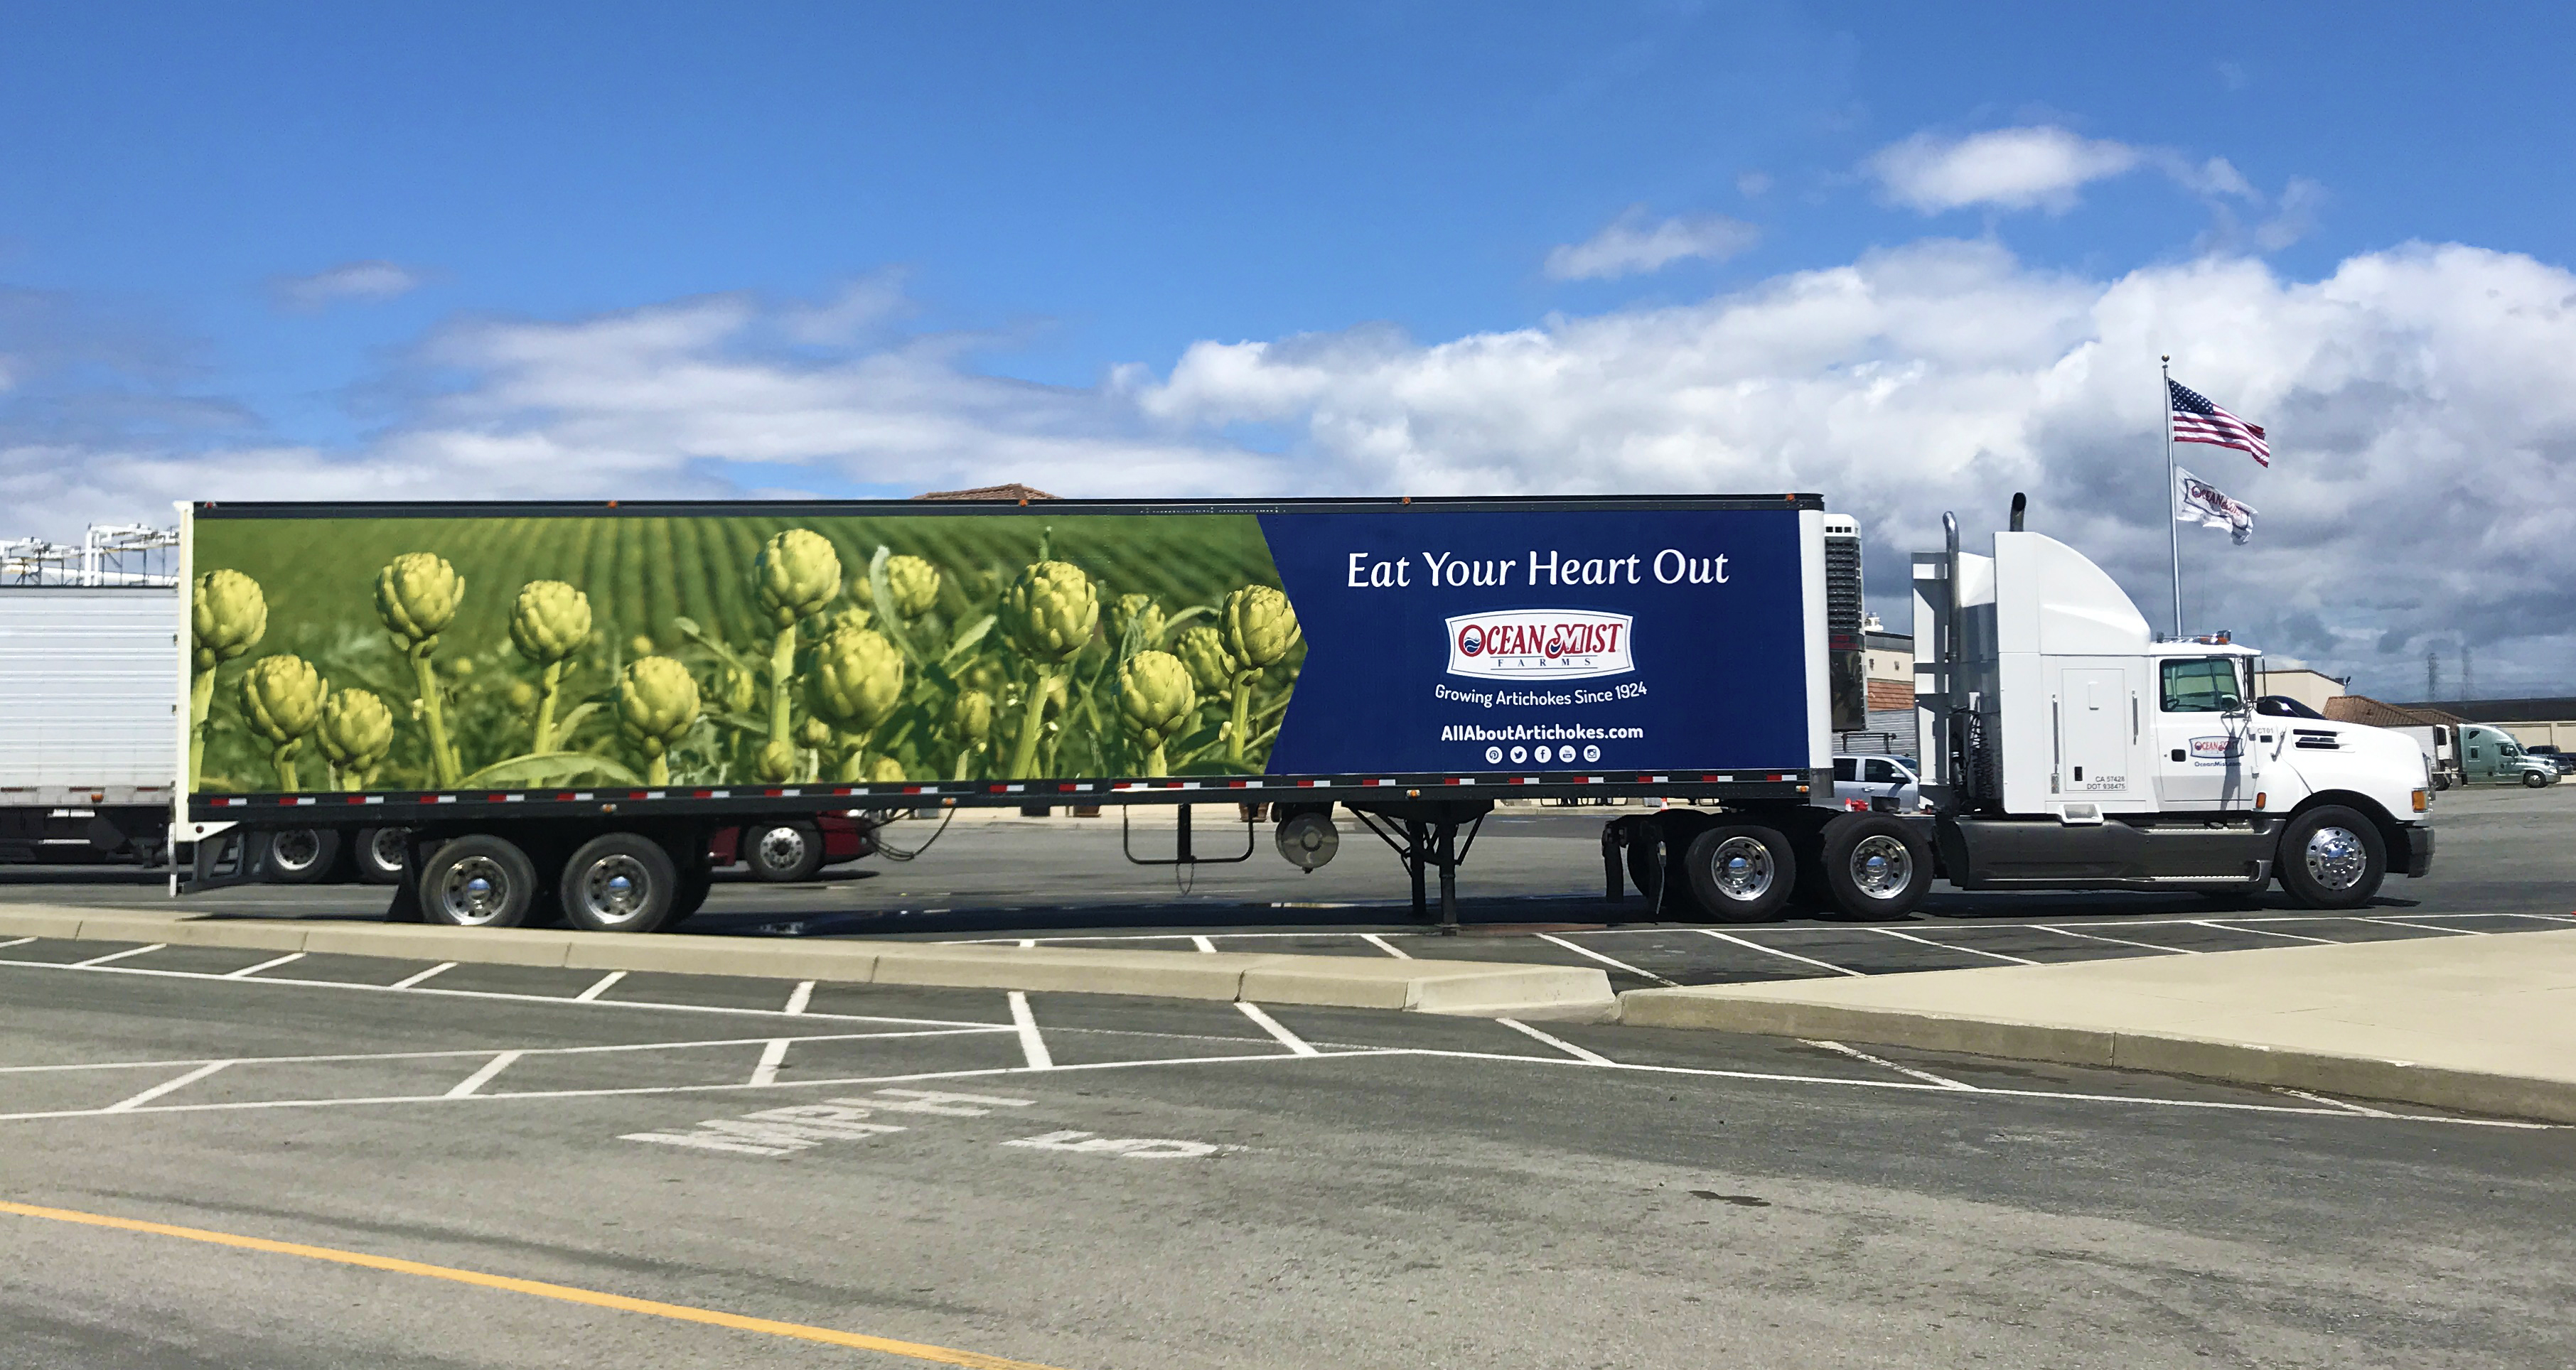 OMF Truck-Eat Your Heart Out